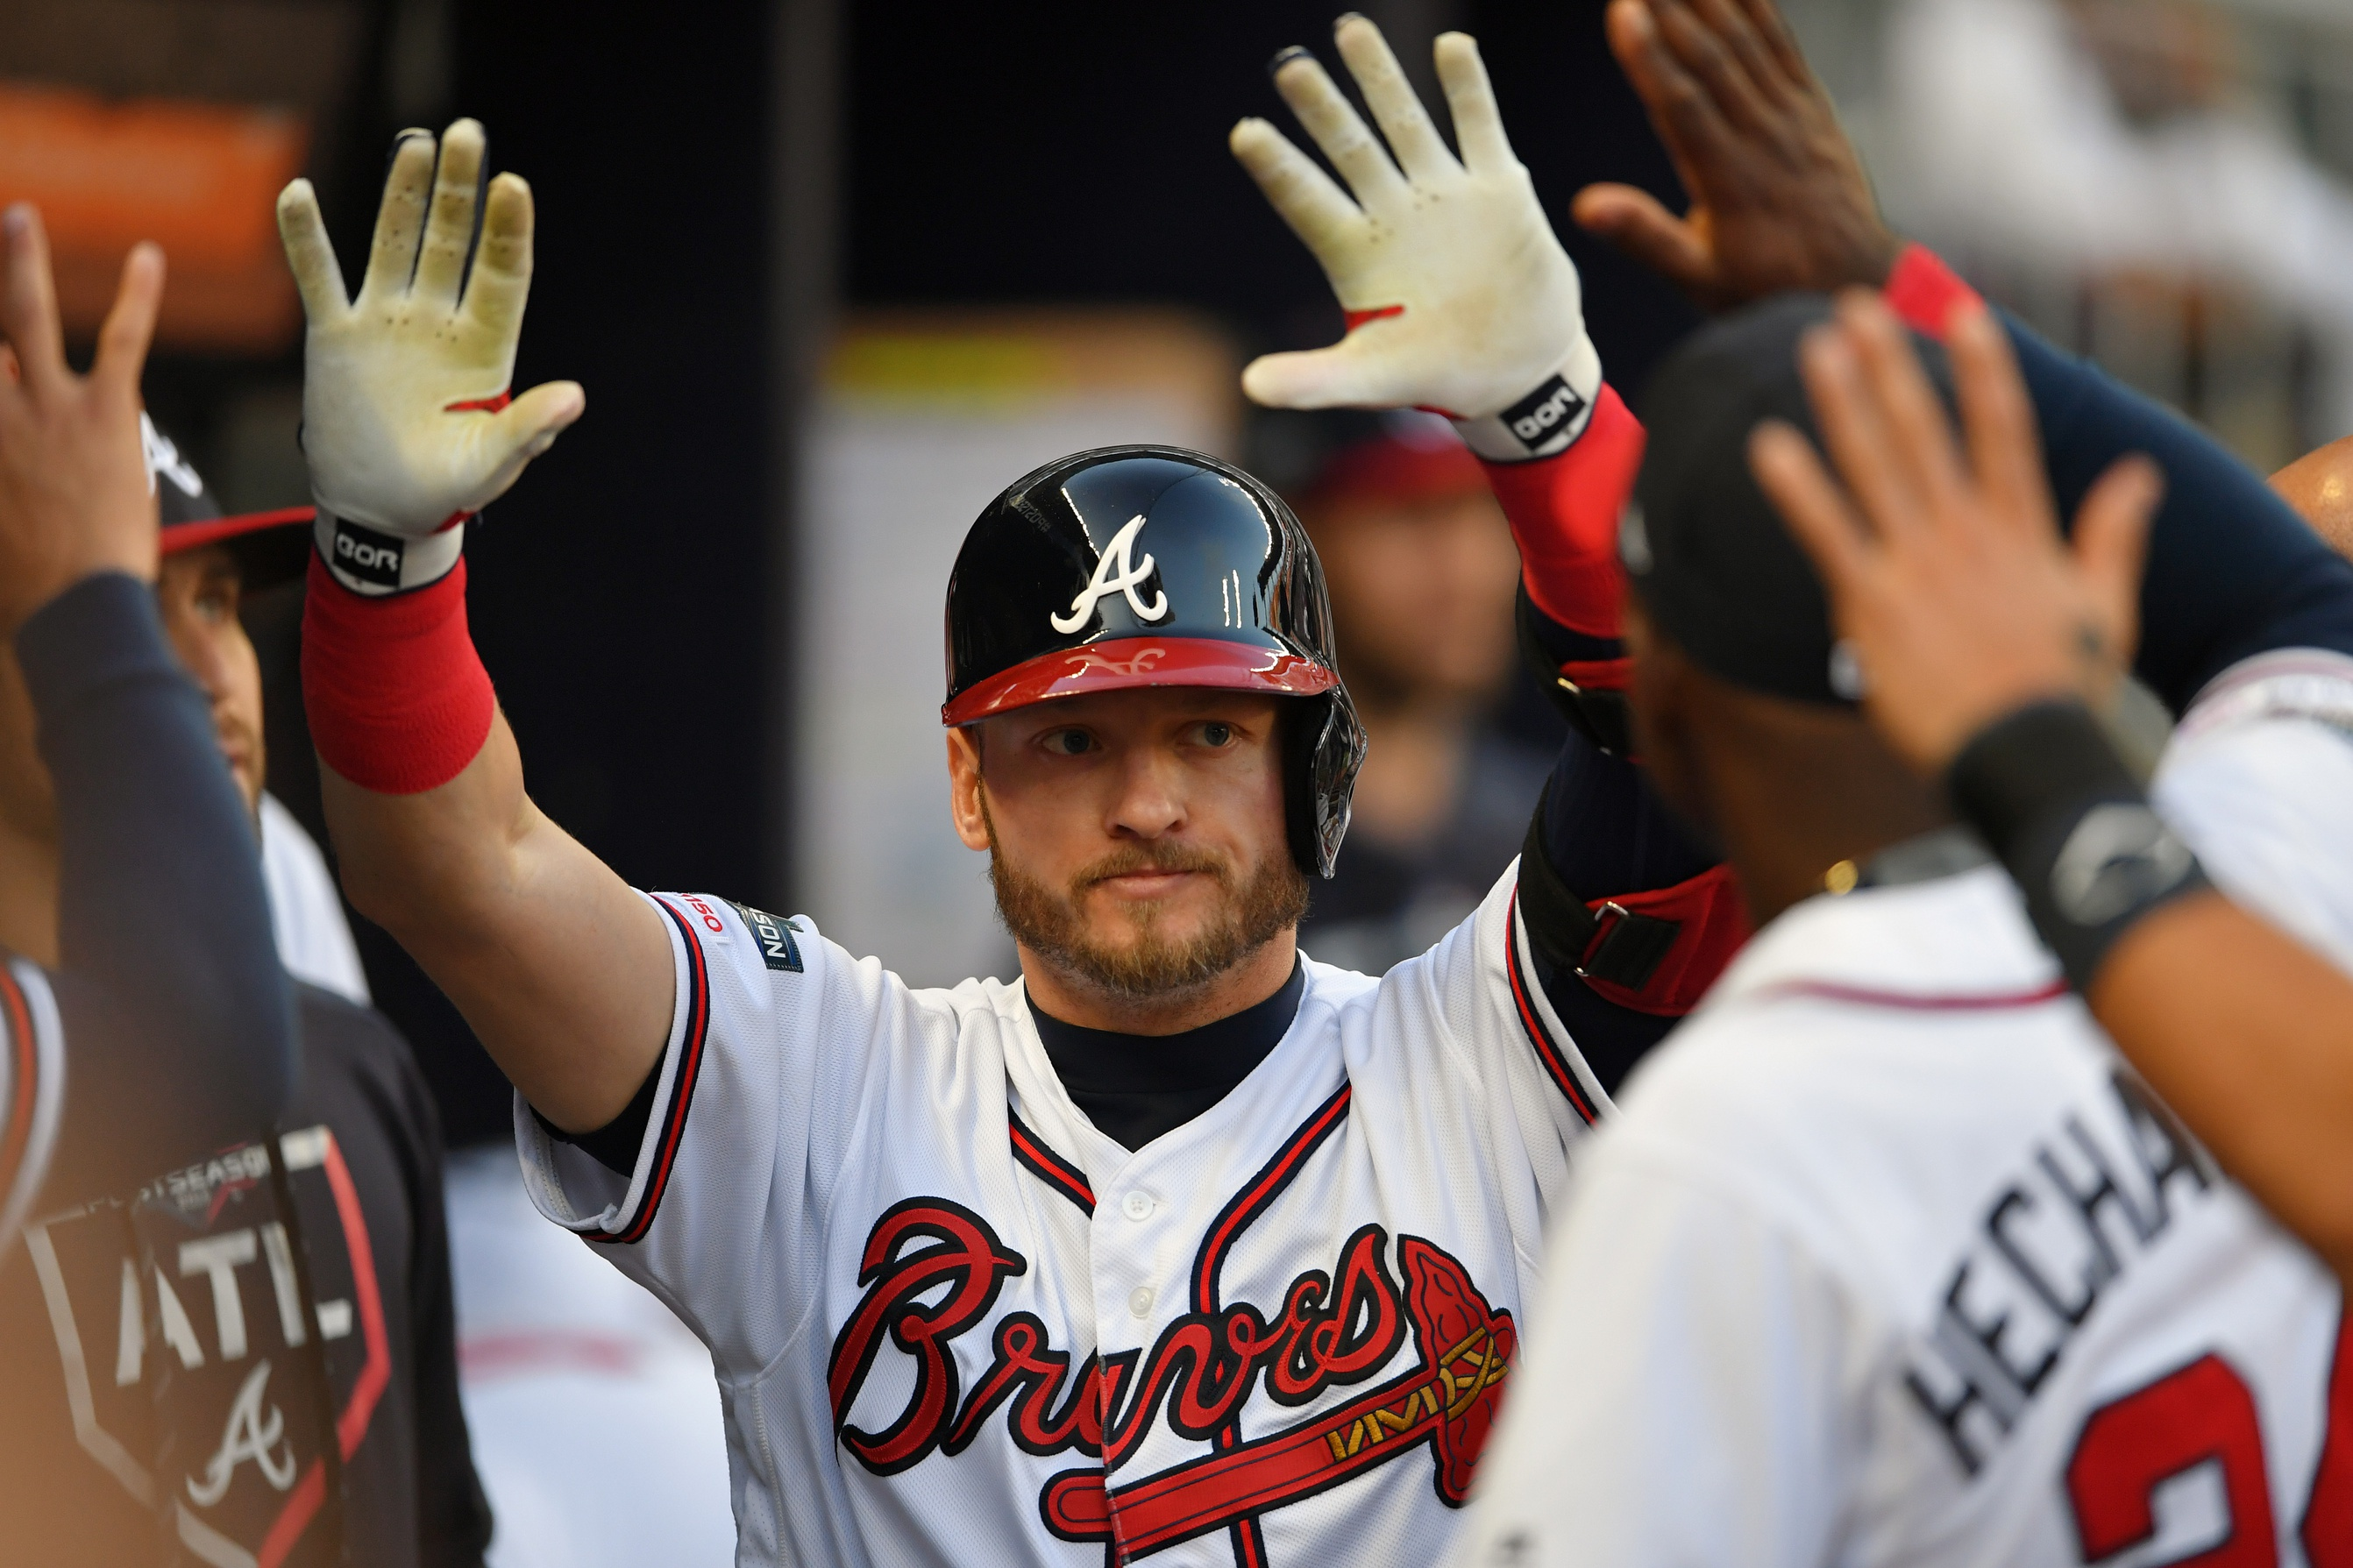 Josh Donaldson on the move in Major League Baseball free agency